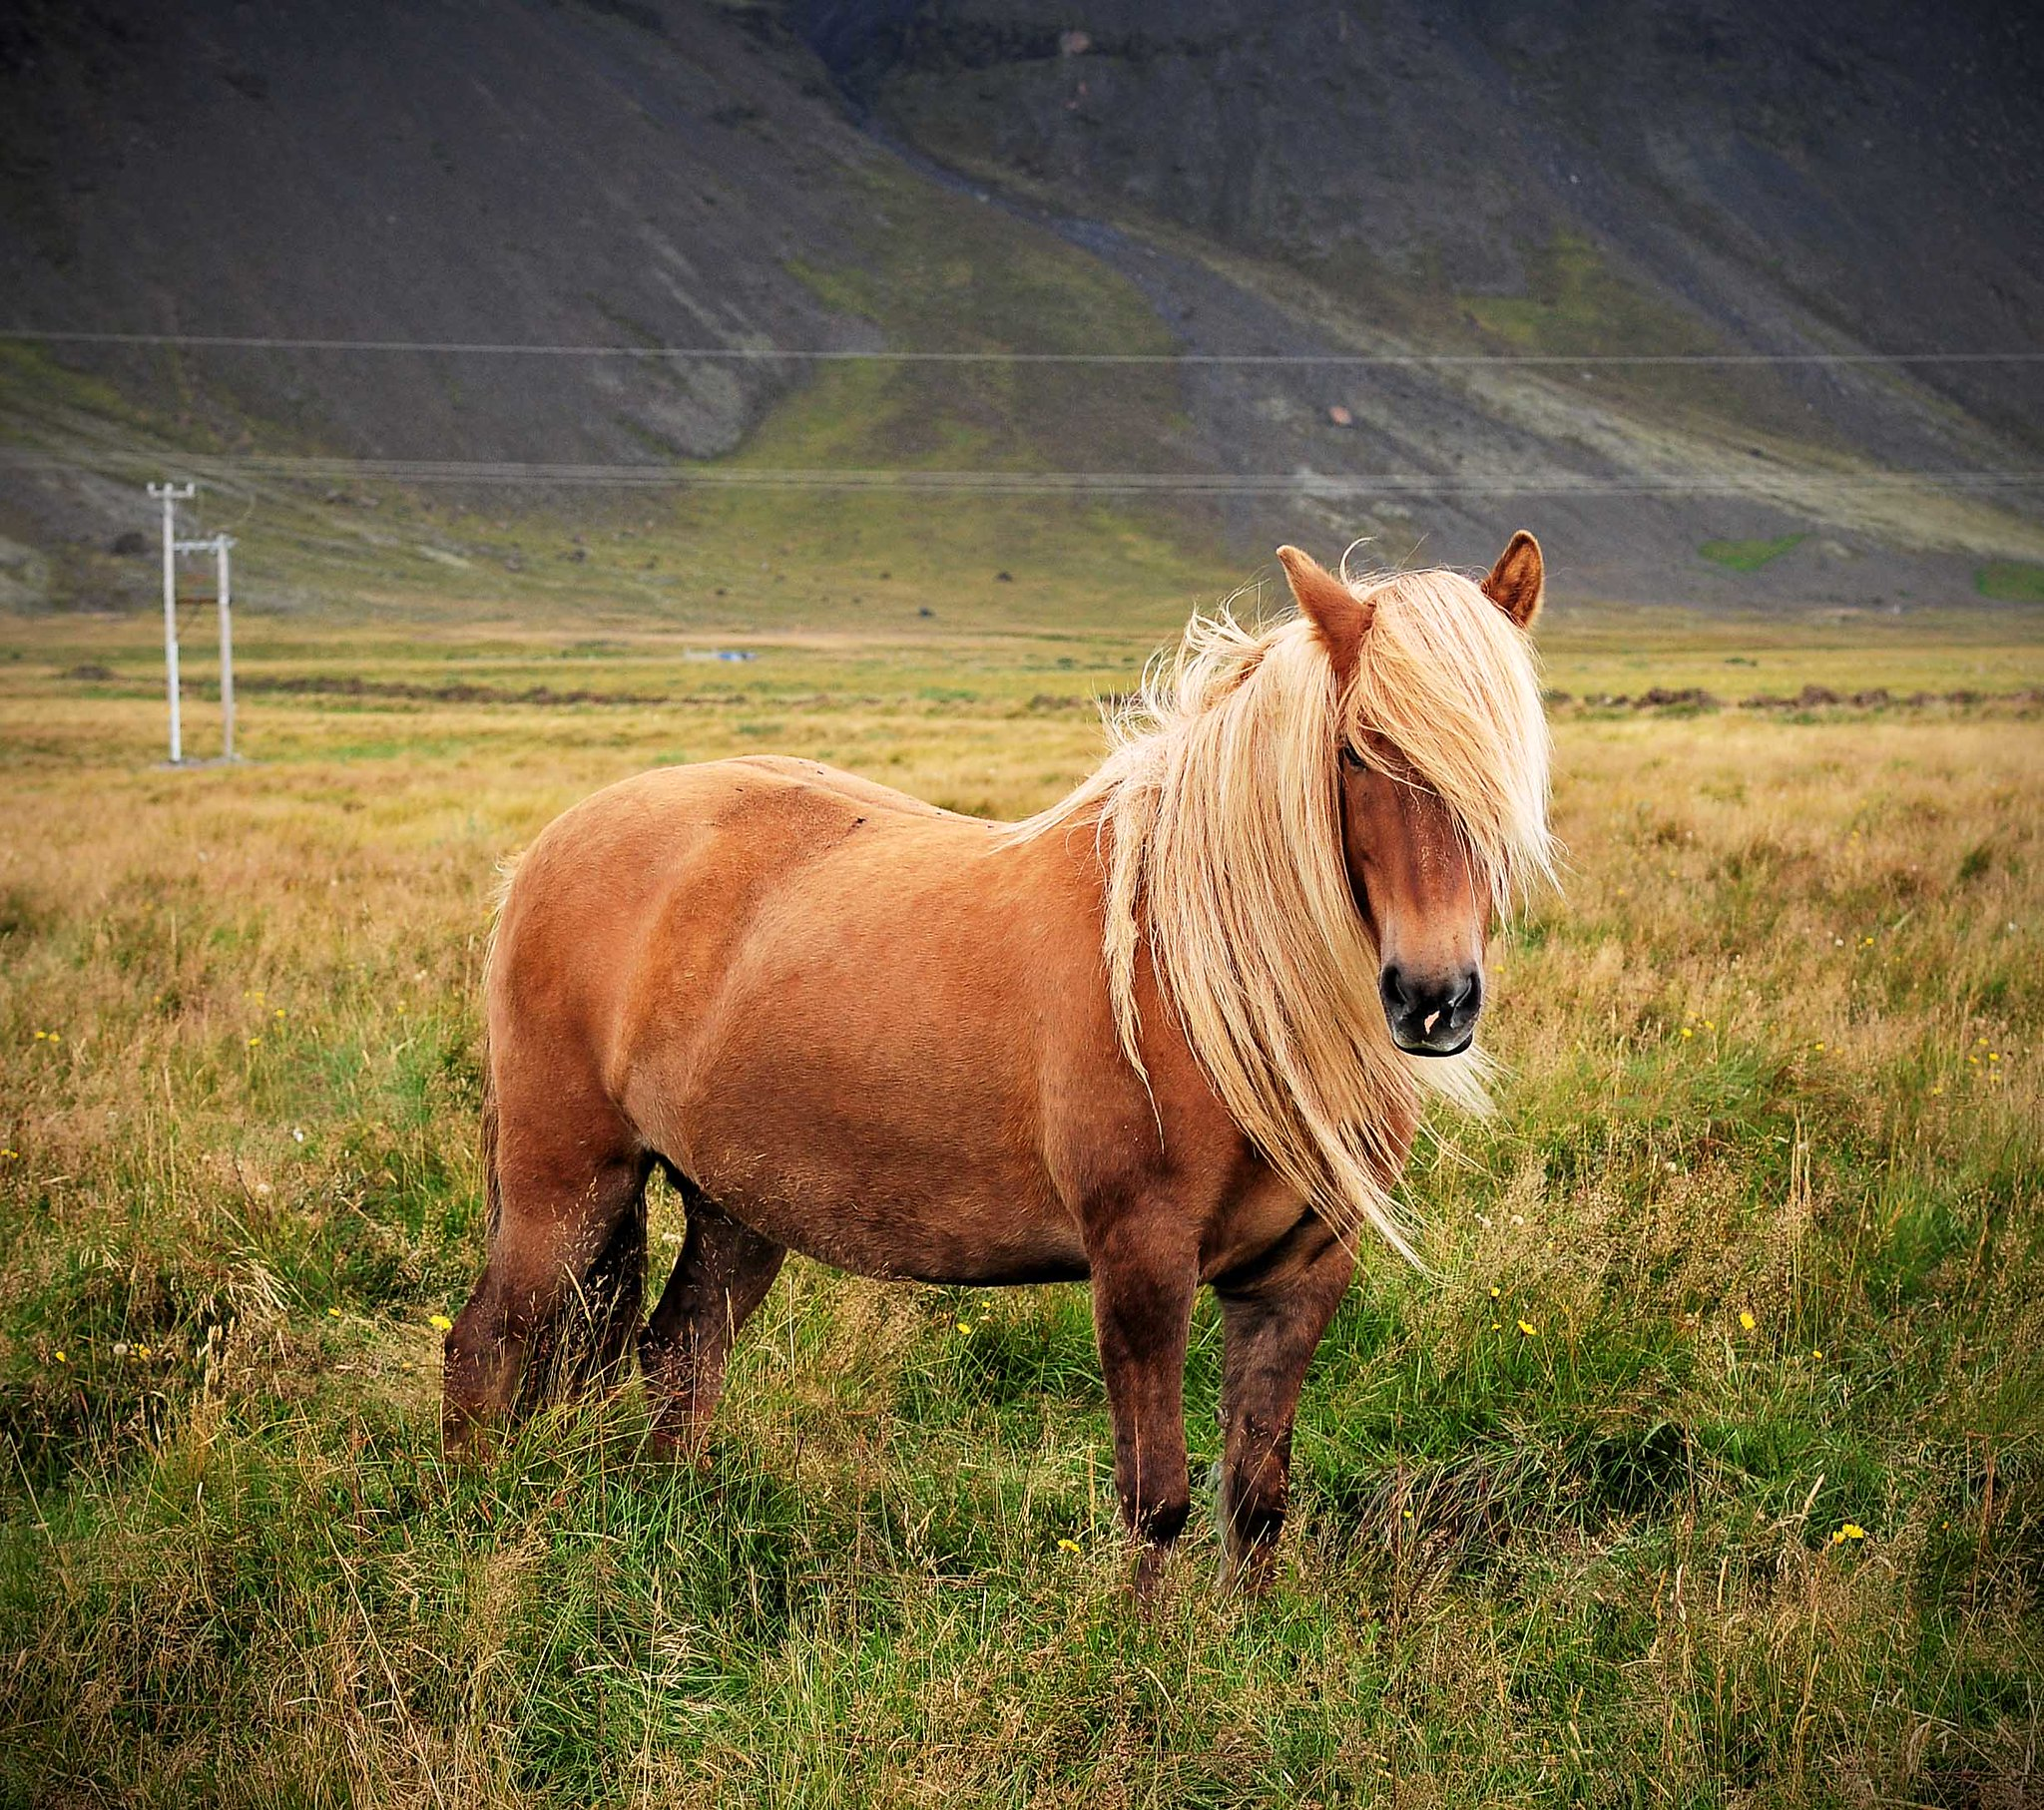 All he wants is Islandic poneys